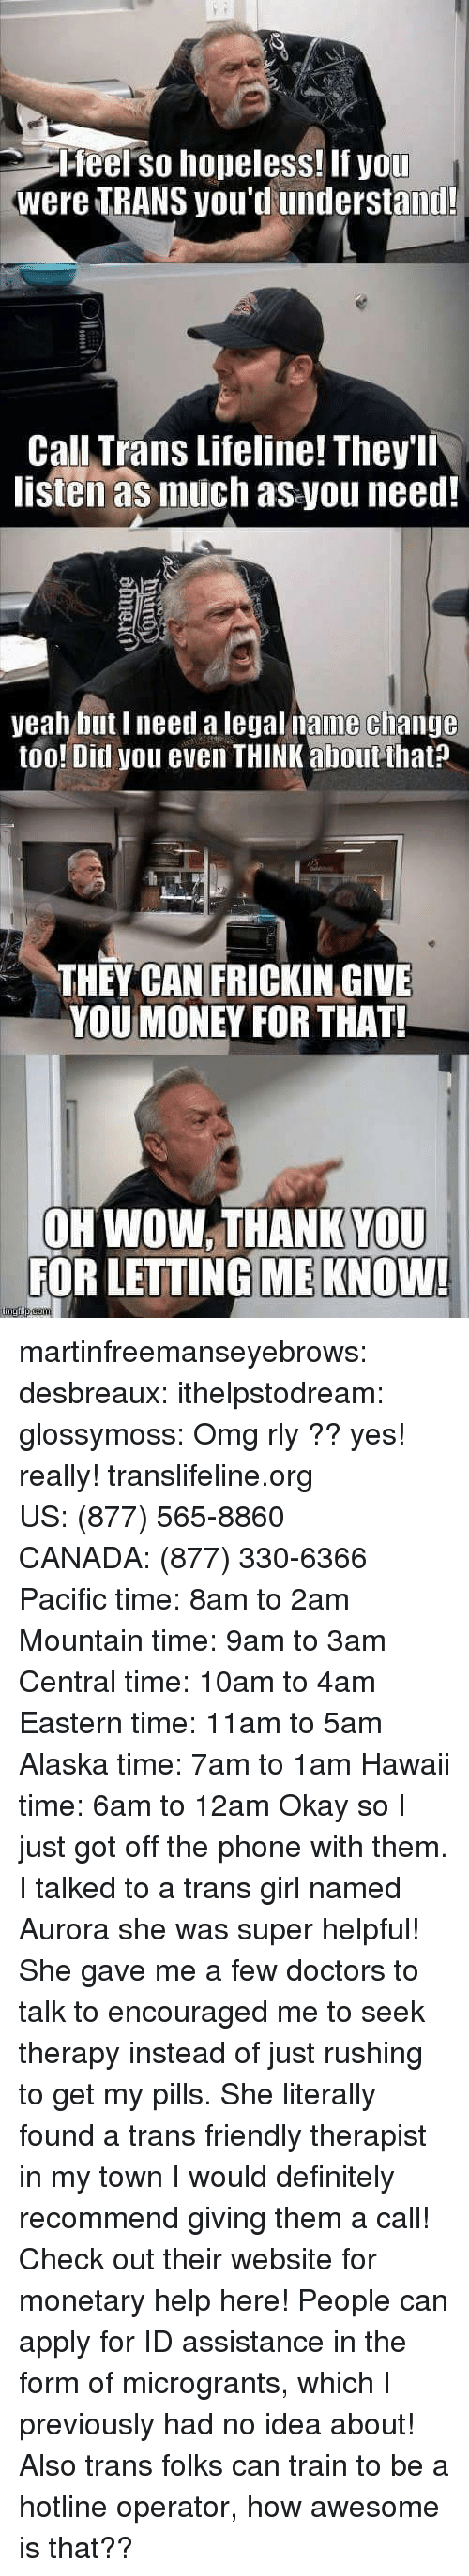 Pacific Time: Pfeel so hopeless! If you  were TRANS you'd understand!  Call Trans Lifeline! They'll  listen as much as you need!  yeah but I need a legal name clhange  too! Ditl you even THINK about that?  THEY CAN FRICKIN GIVE  YOU MONEY FOR THAT!  OH WOW. THANK YOU  FOR LETTING ME KNOW! martinfreemanseyebrows: desbreaux:  ithelpstodream:  glossymoss:  Omg rly ??  yes! really! translifeline.org US:(877) 565-8860 CANADA:(877) 330-6366 Pacific time: 8am to 2am Mountain time: 9am to 3am Central time: 10am to 4am Eastern time: 11am to 5am Alaska time: 7am to 1am Hawaii time: 6am to 12am   Okay so I just got off the phone with them. I talked to a trans girl named Aurora  she was super helpful! She gave me a few doctors to talk to  encouraged me to seek therapy instead of just rushing to get my pills. She literally found a trans friendly therapist in my town  I would definitely recommend giving them a call!   Check out their website for monetary helphere! People can apply for ID assistance in the form of microgrants, which I previously had no idea about! Also trans folks can train to be a hotline operator, how awesome is that??